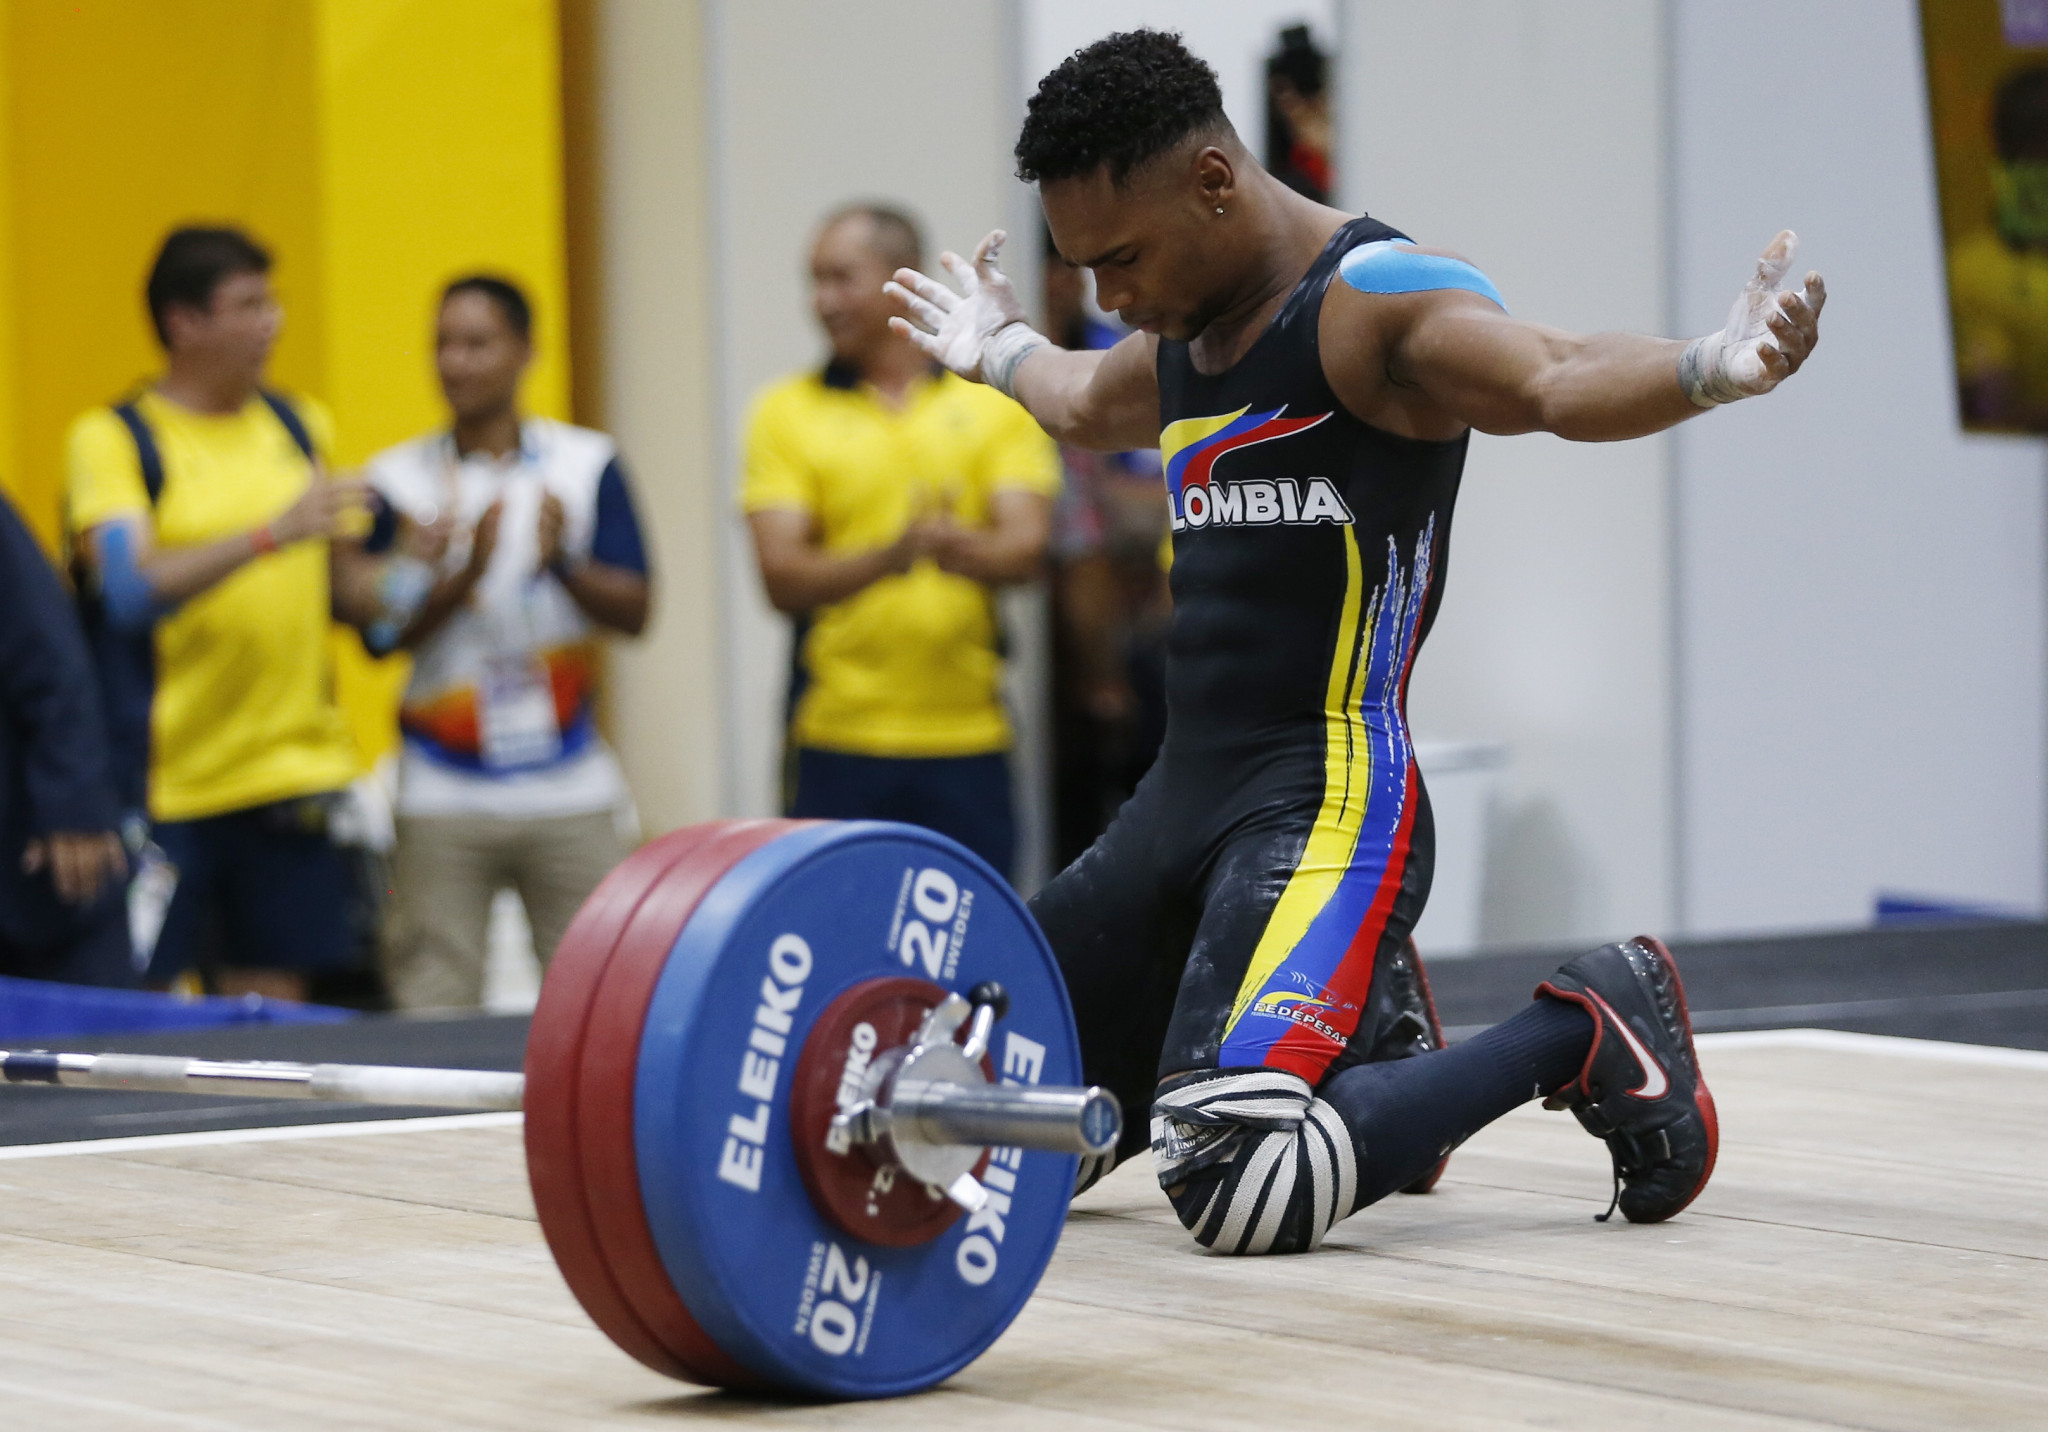 Weightlifters from USA, Canada and Ecuador aim to keep up good work at Pan American Championships